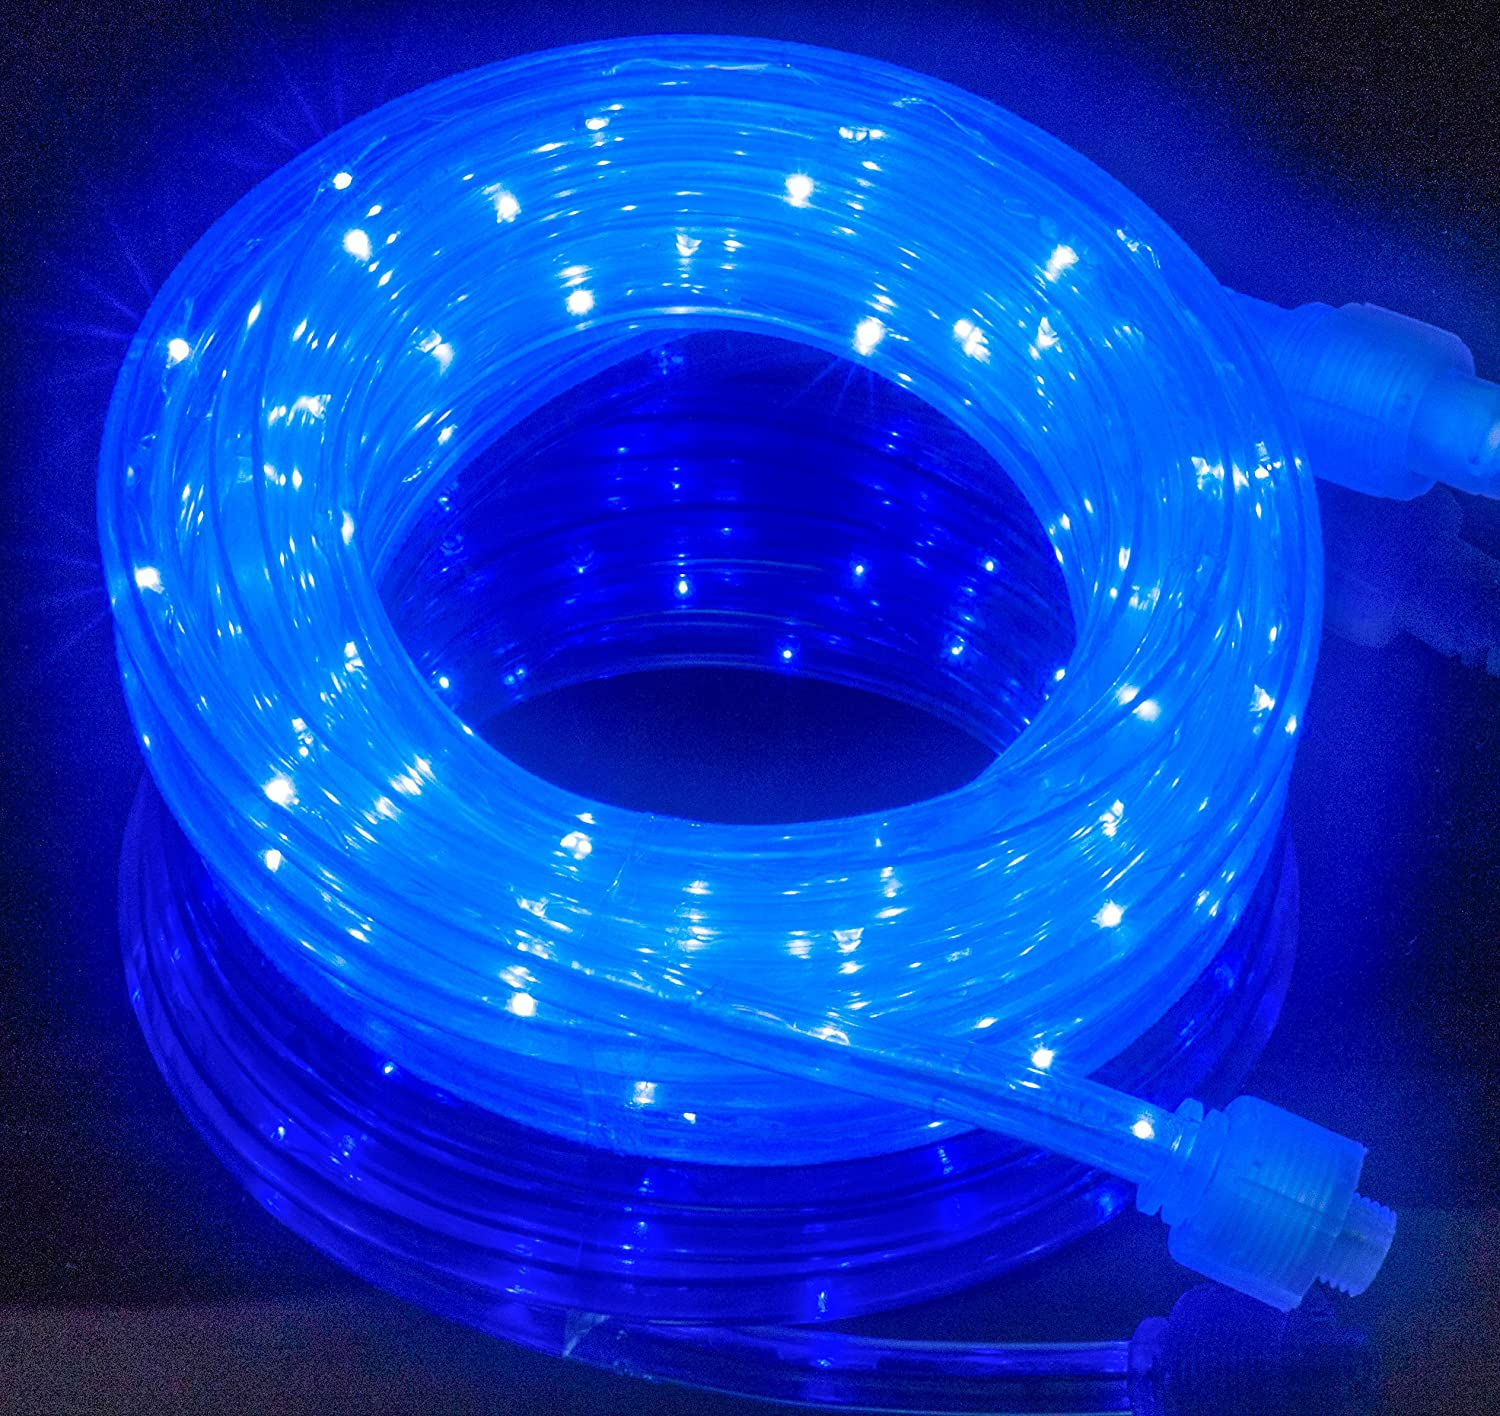 premium selection 13cf9 b1a94 Izzy Creation 18FT Blue LED Flexible Rope Lights Kit, Indoor/Outdoor  Lighting, Home, Garden, Patio, Shop Windows, Christmas, New Year, Wedding,  ...